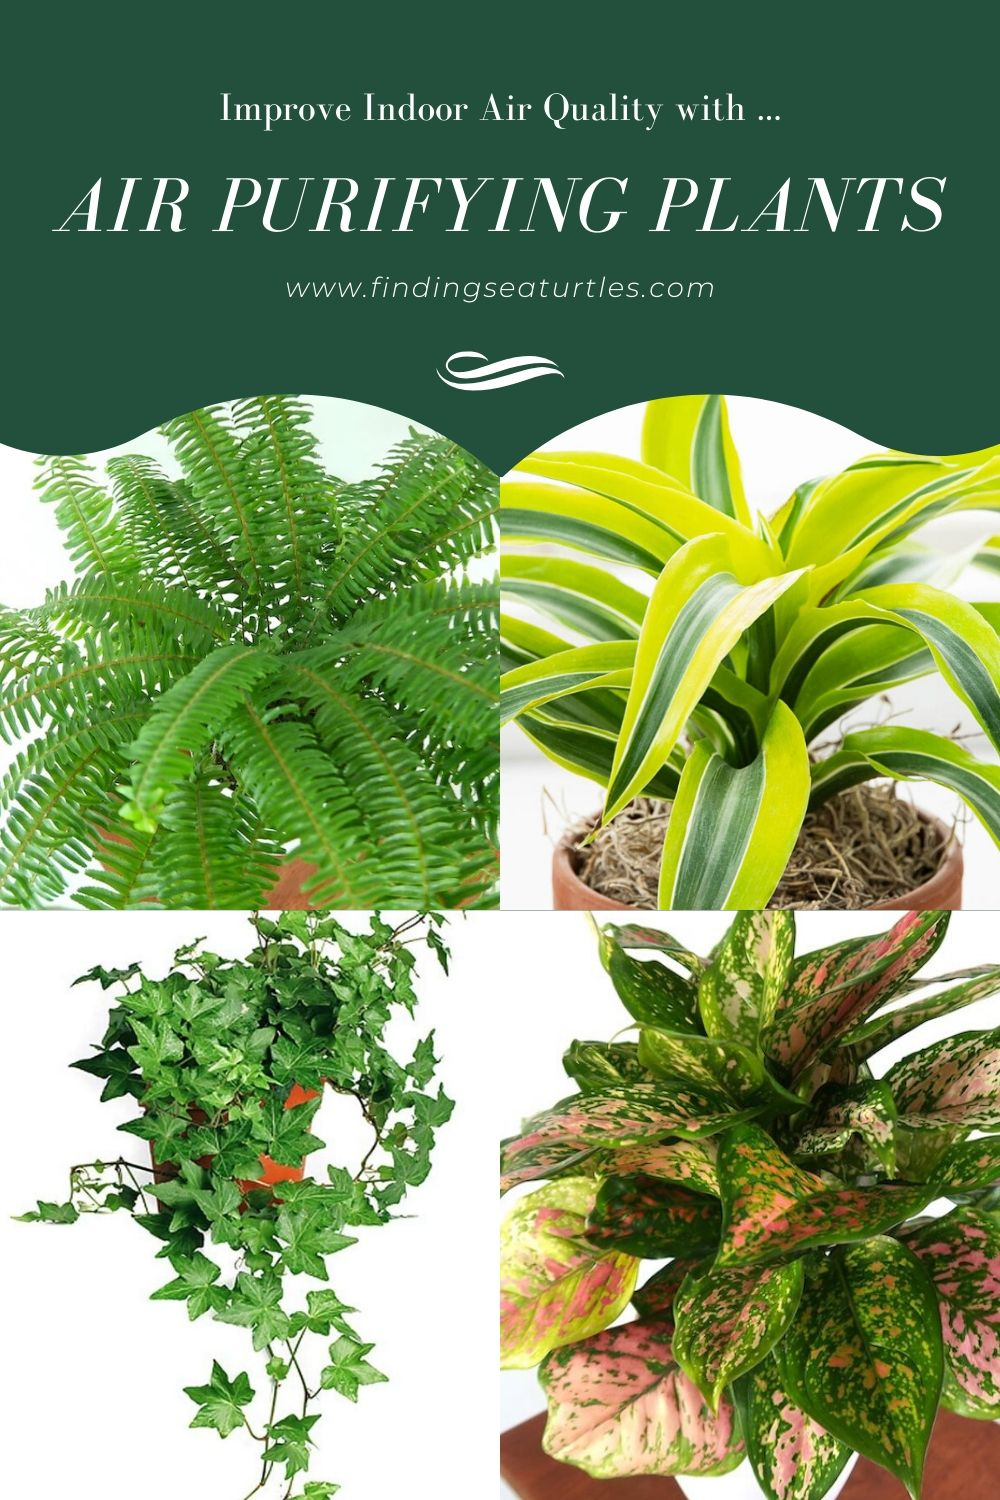 Air Purifying Plants for the Home Plants, Air cleaning